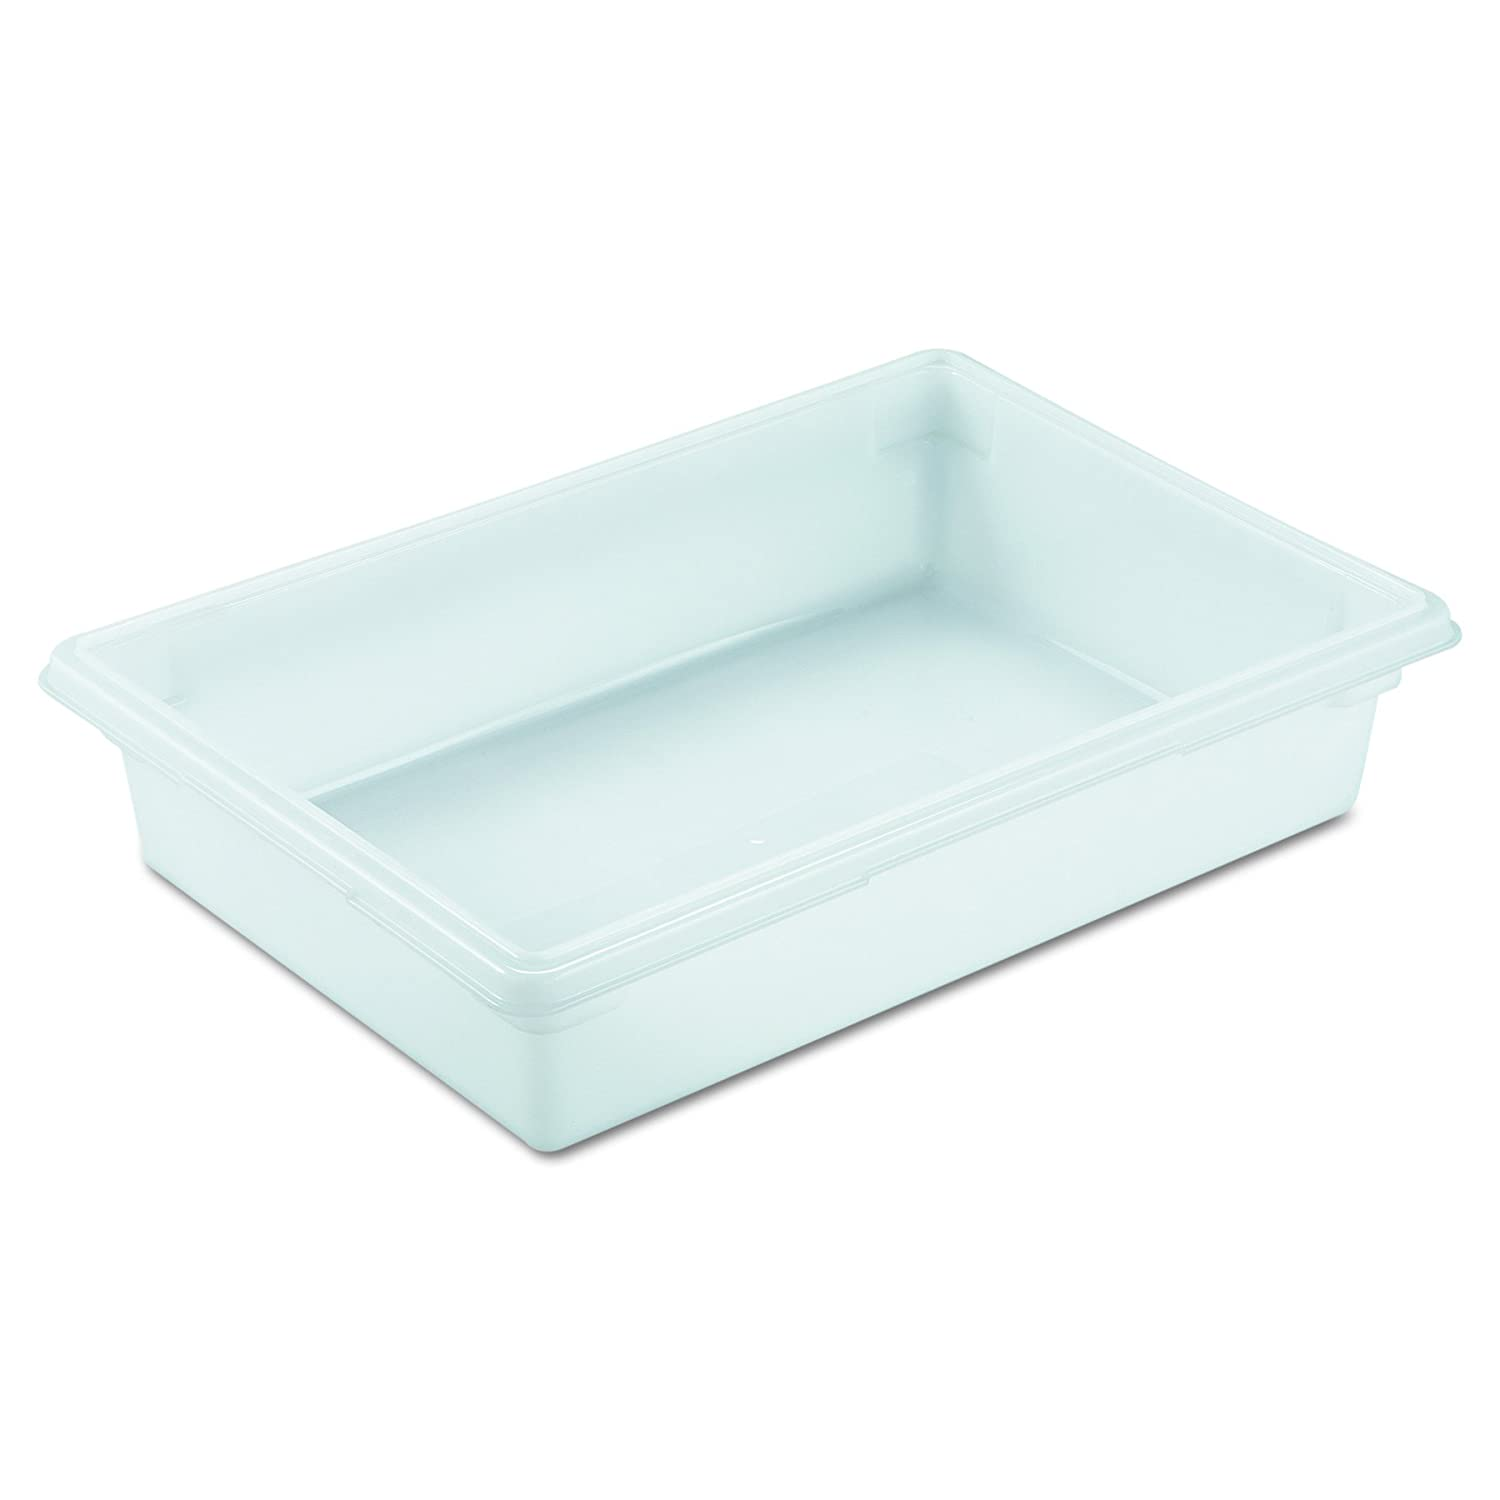 Rubbermaid Commercial Products Food Storage Box/Tote for Restaurant/Kitchen/Cafeteria, 8.5 Gallon, White (FG350800WHT)